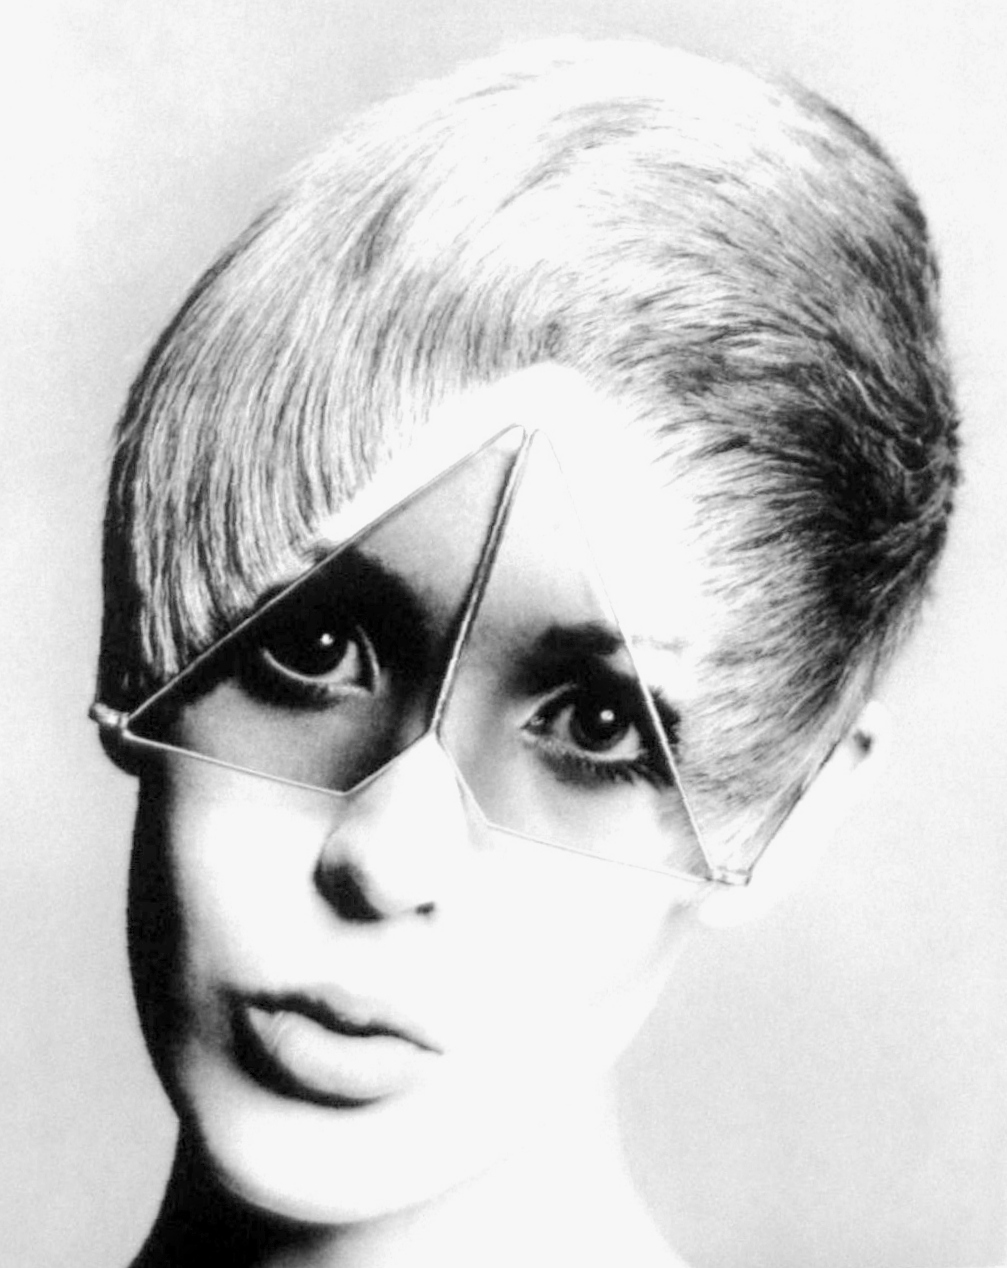 Vidal Sassoon Styled The 1960 Hairstyles Vintage Everyday